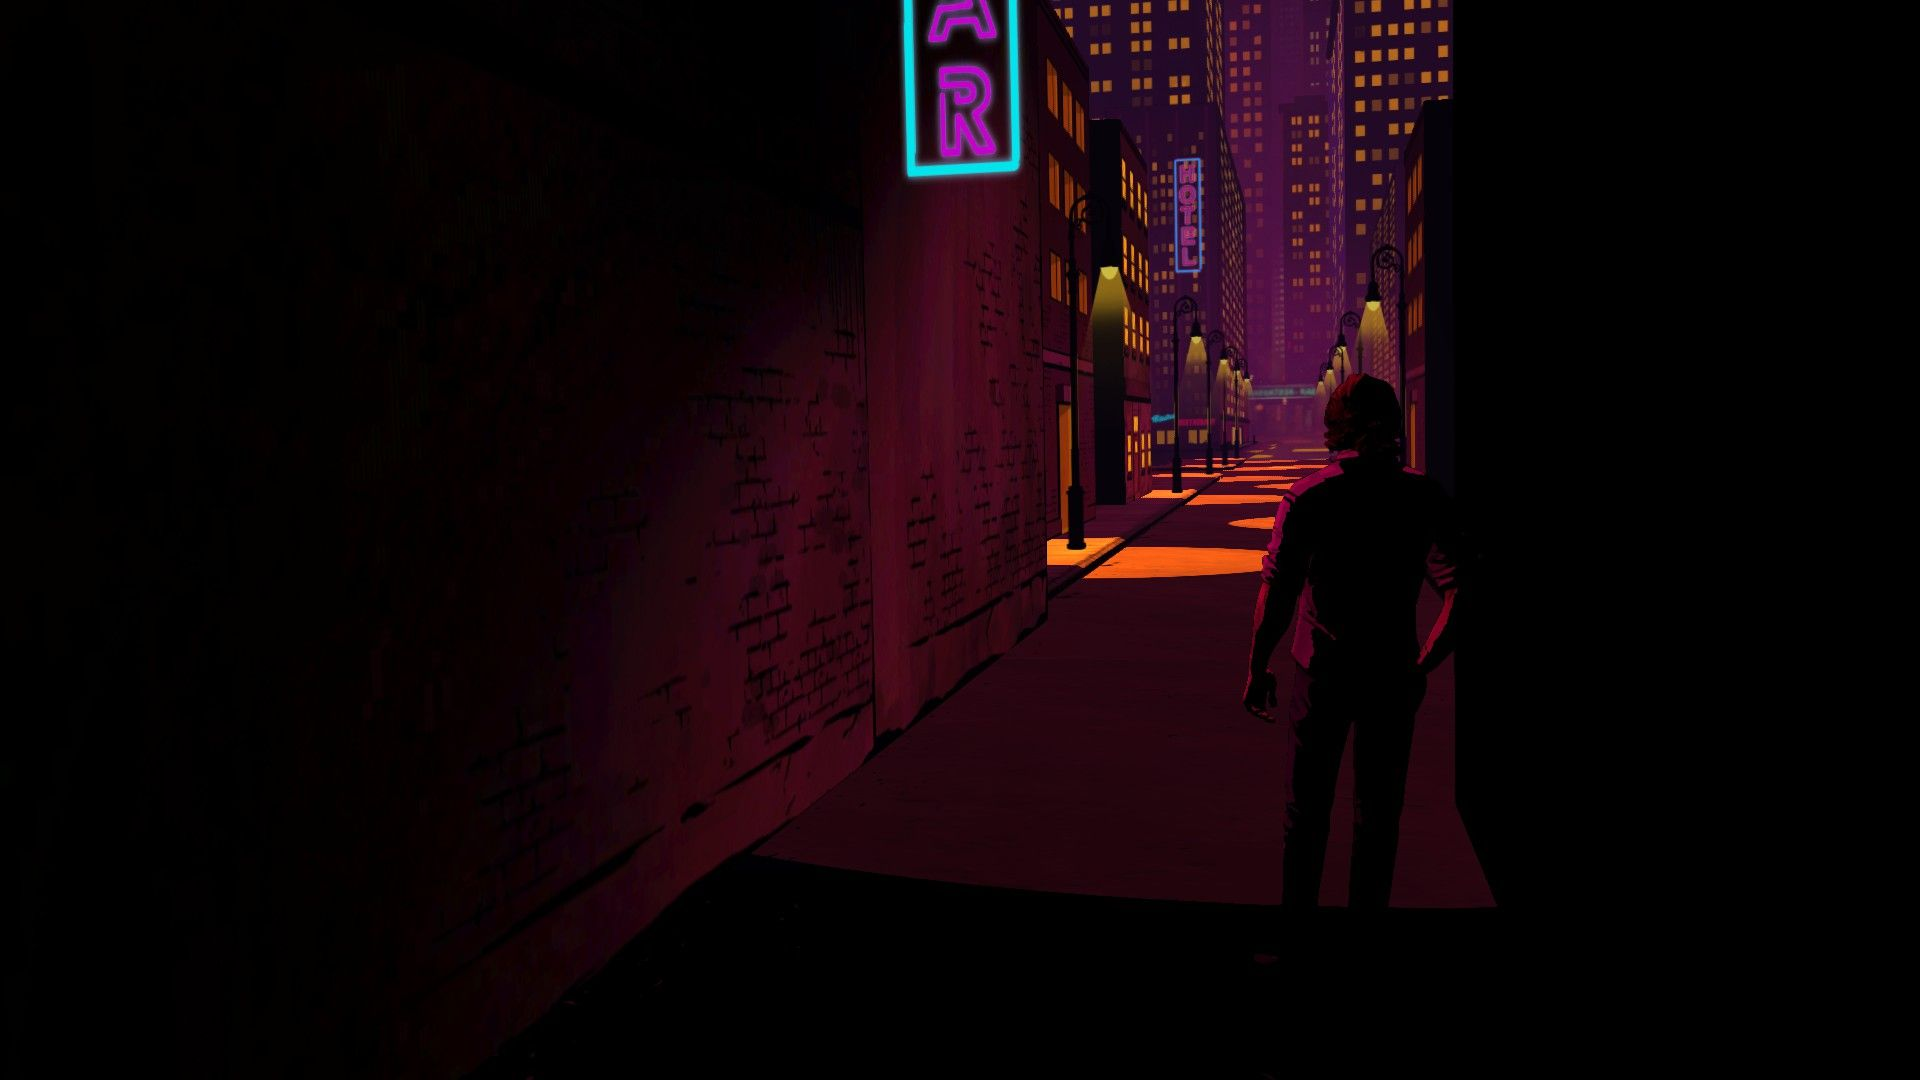 2013 10 16 00030 Jpg 1920 1080 The Wolf Among Us Film Noir Neon Noir